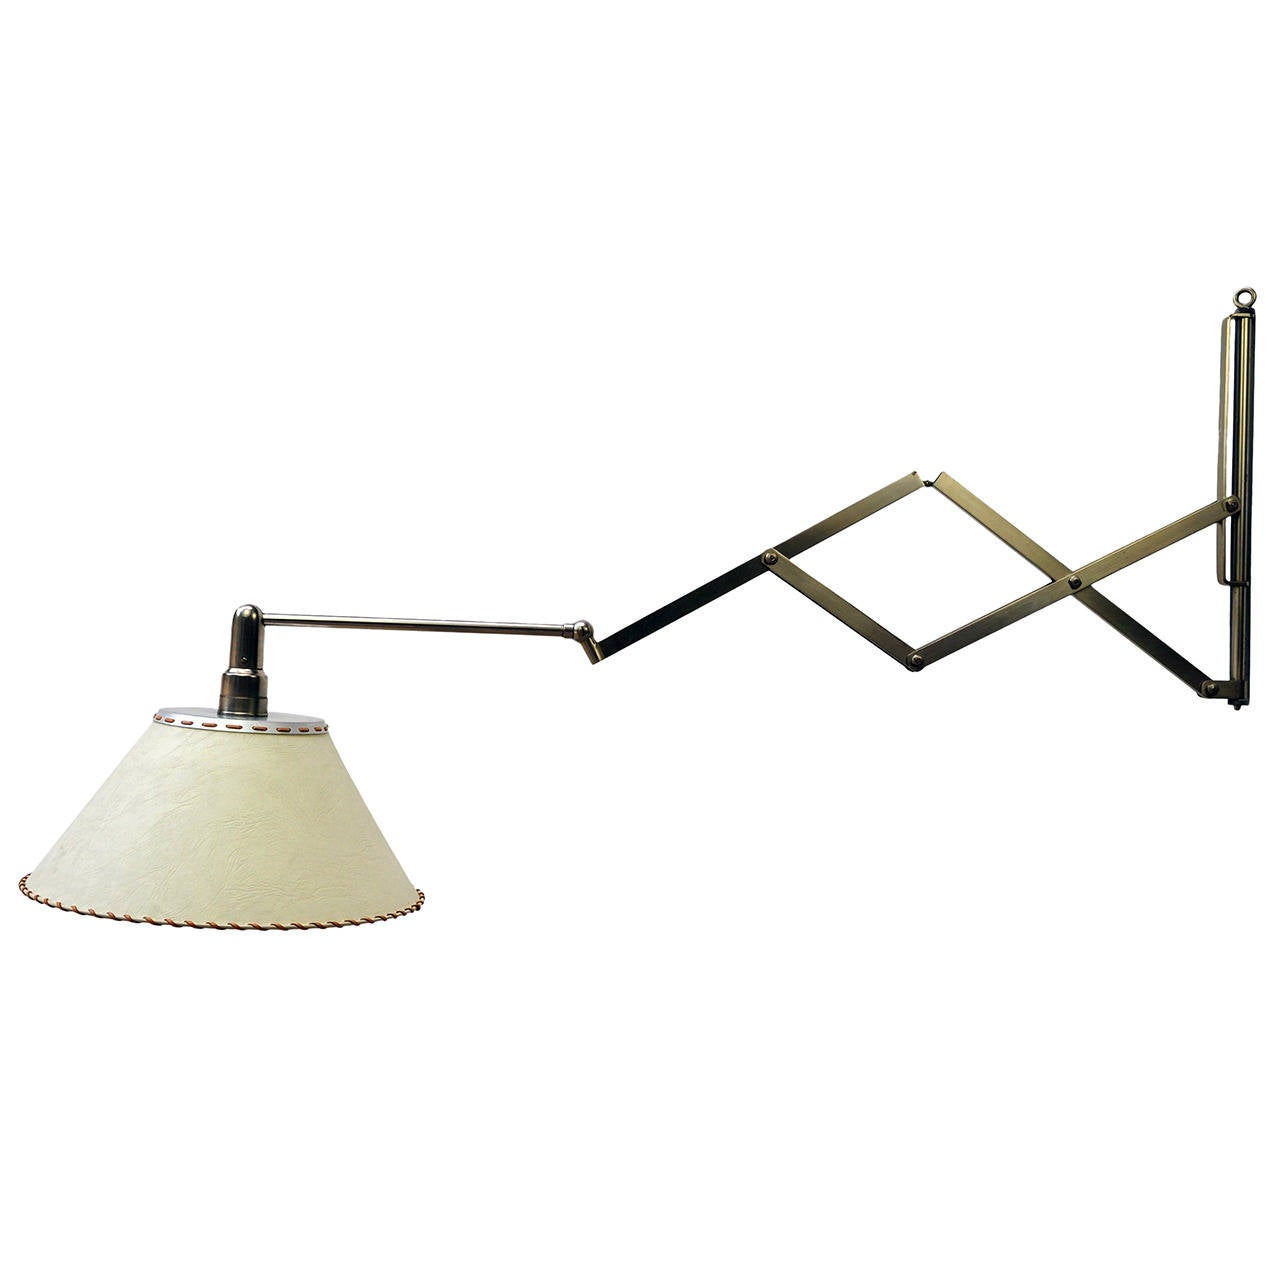 BAG TURGI for Wohnberdarf Retractable Lamp at 1stdibs